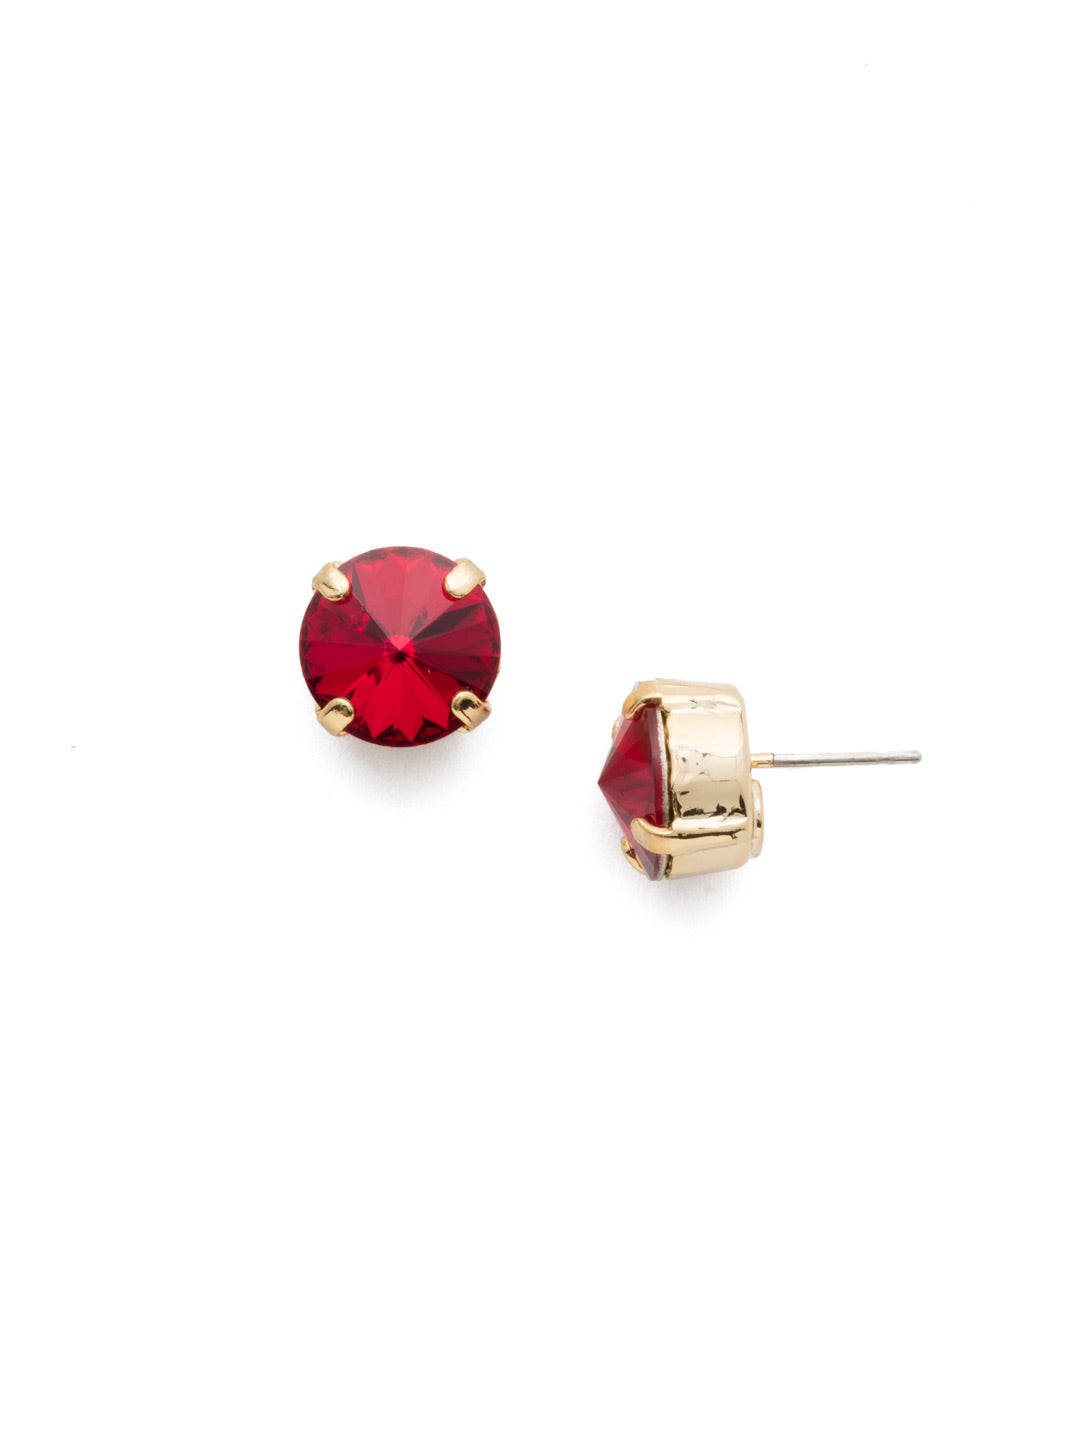 Round Crystal Stud Earrings - ECM14BGSRC